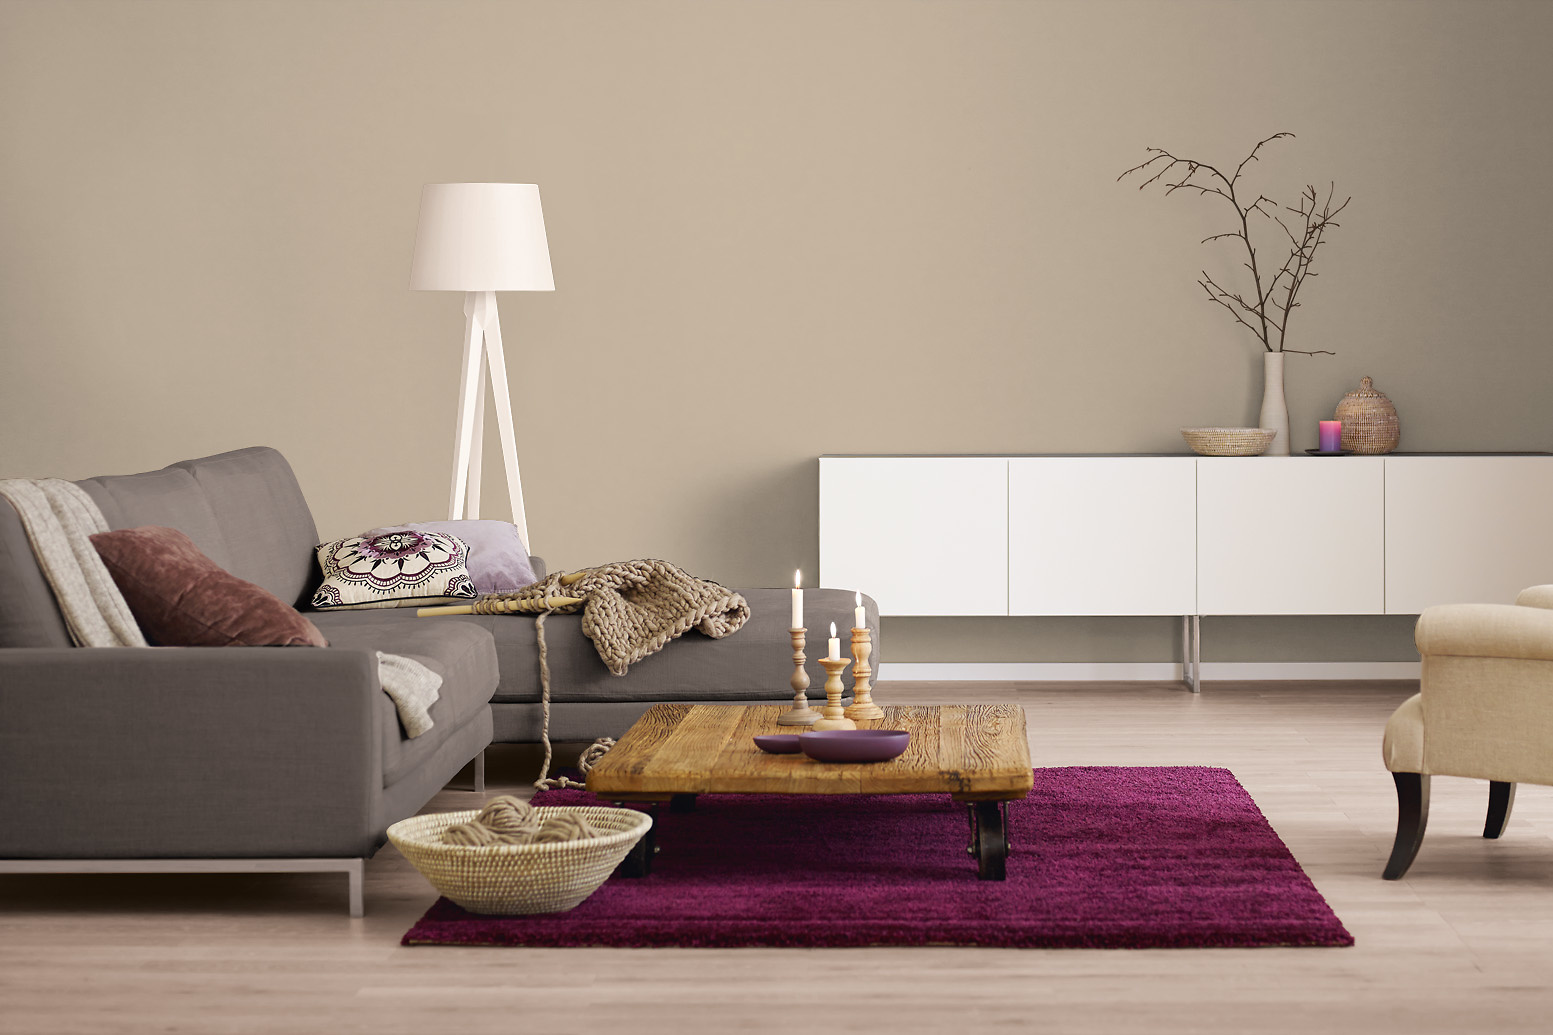 innenfarbe in braun taupe streichen alpina farbrezepte zartes puder alpina farben. Black Bedroom Furniture Sets. Home Design Ideas